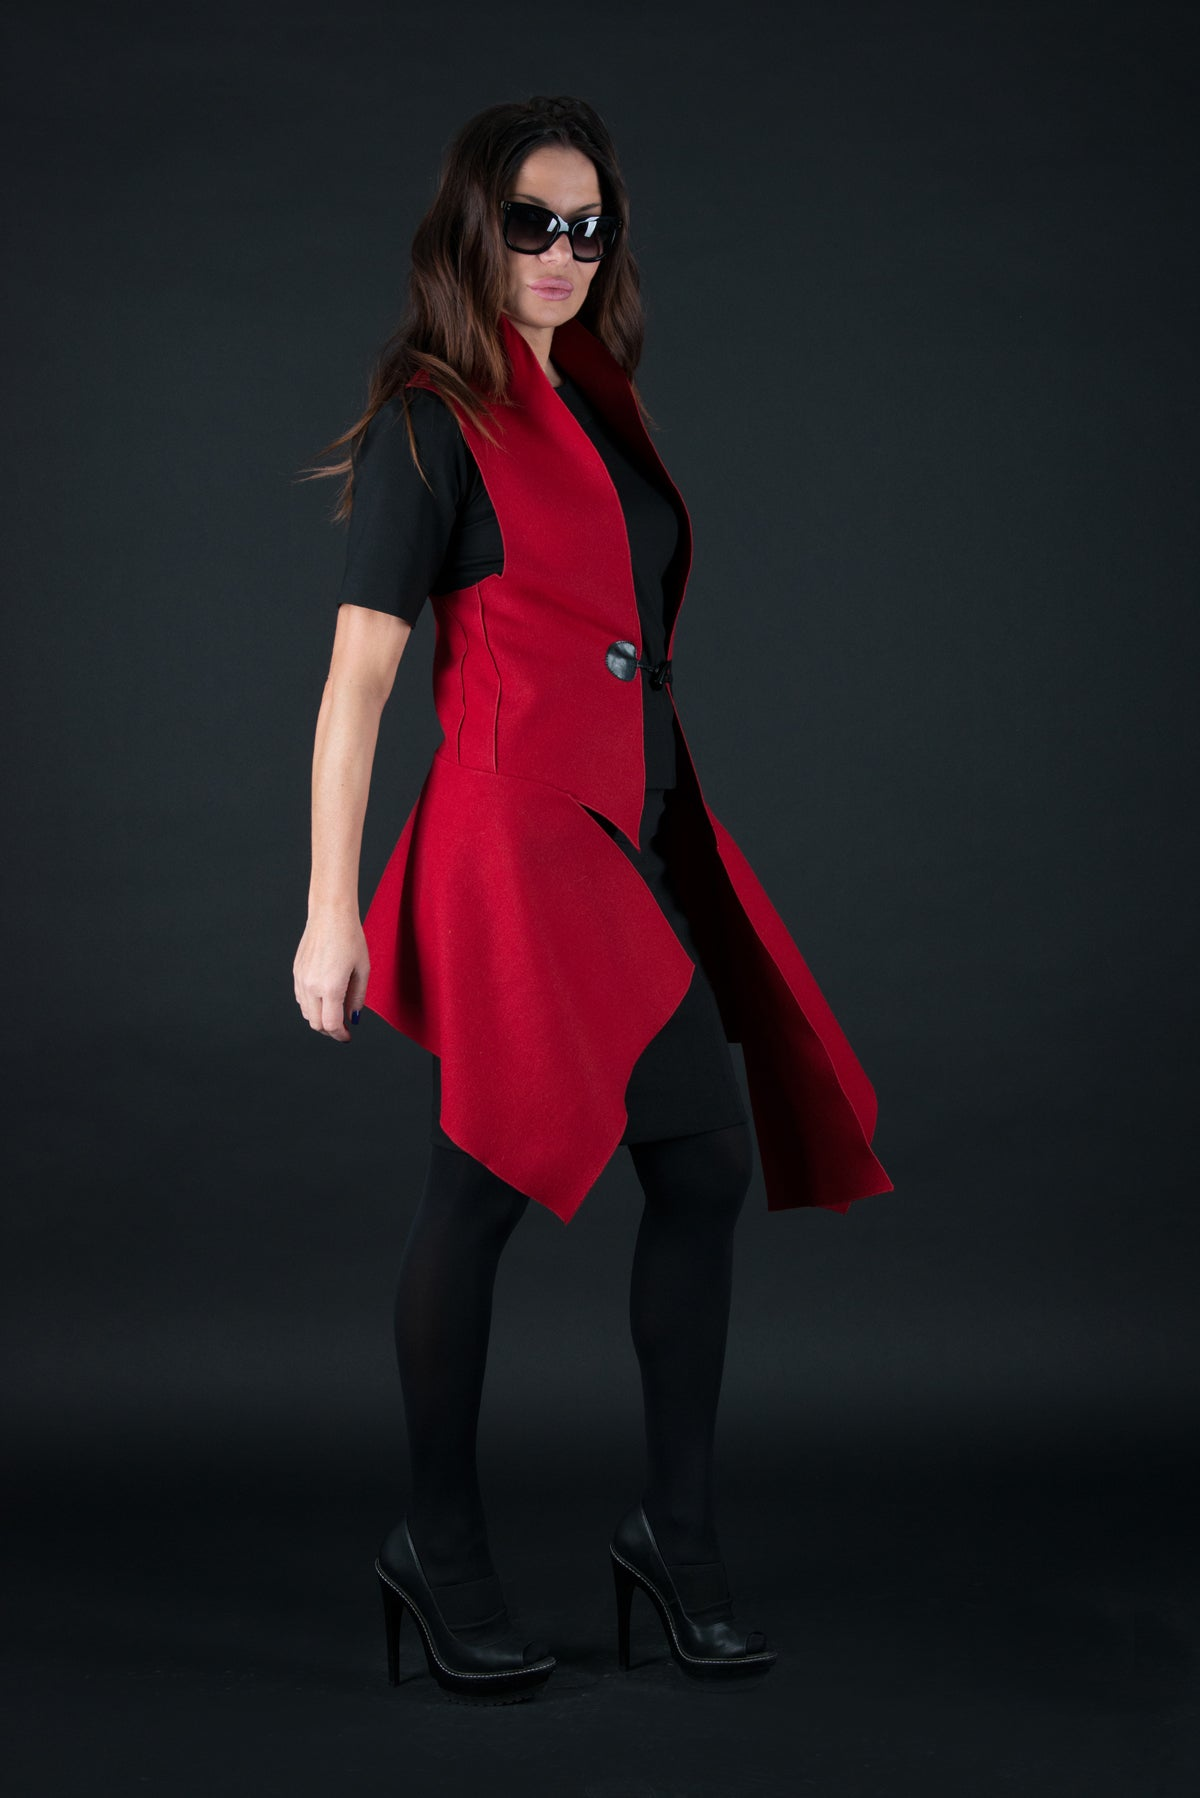 Autumn Winter Red Sleeveless Wool Vest, Cardigans & Vests